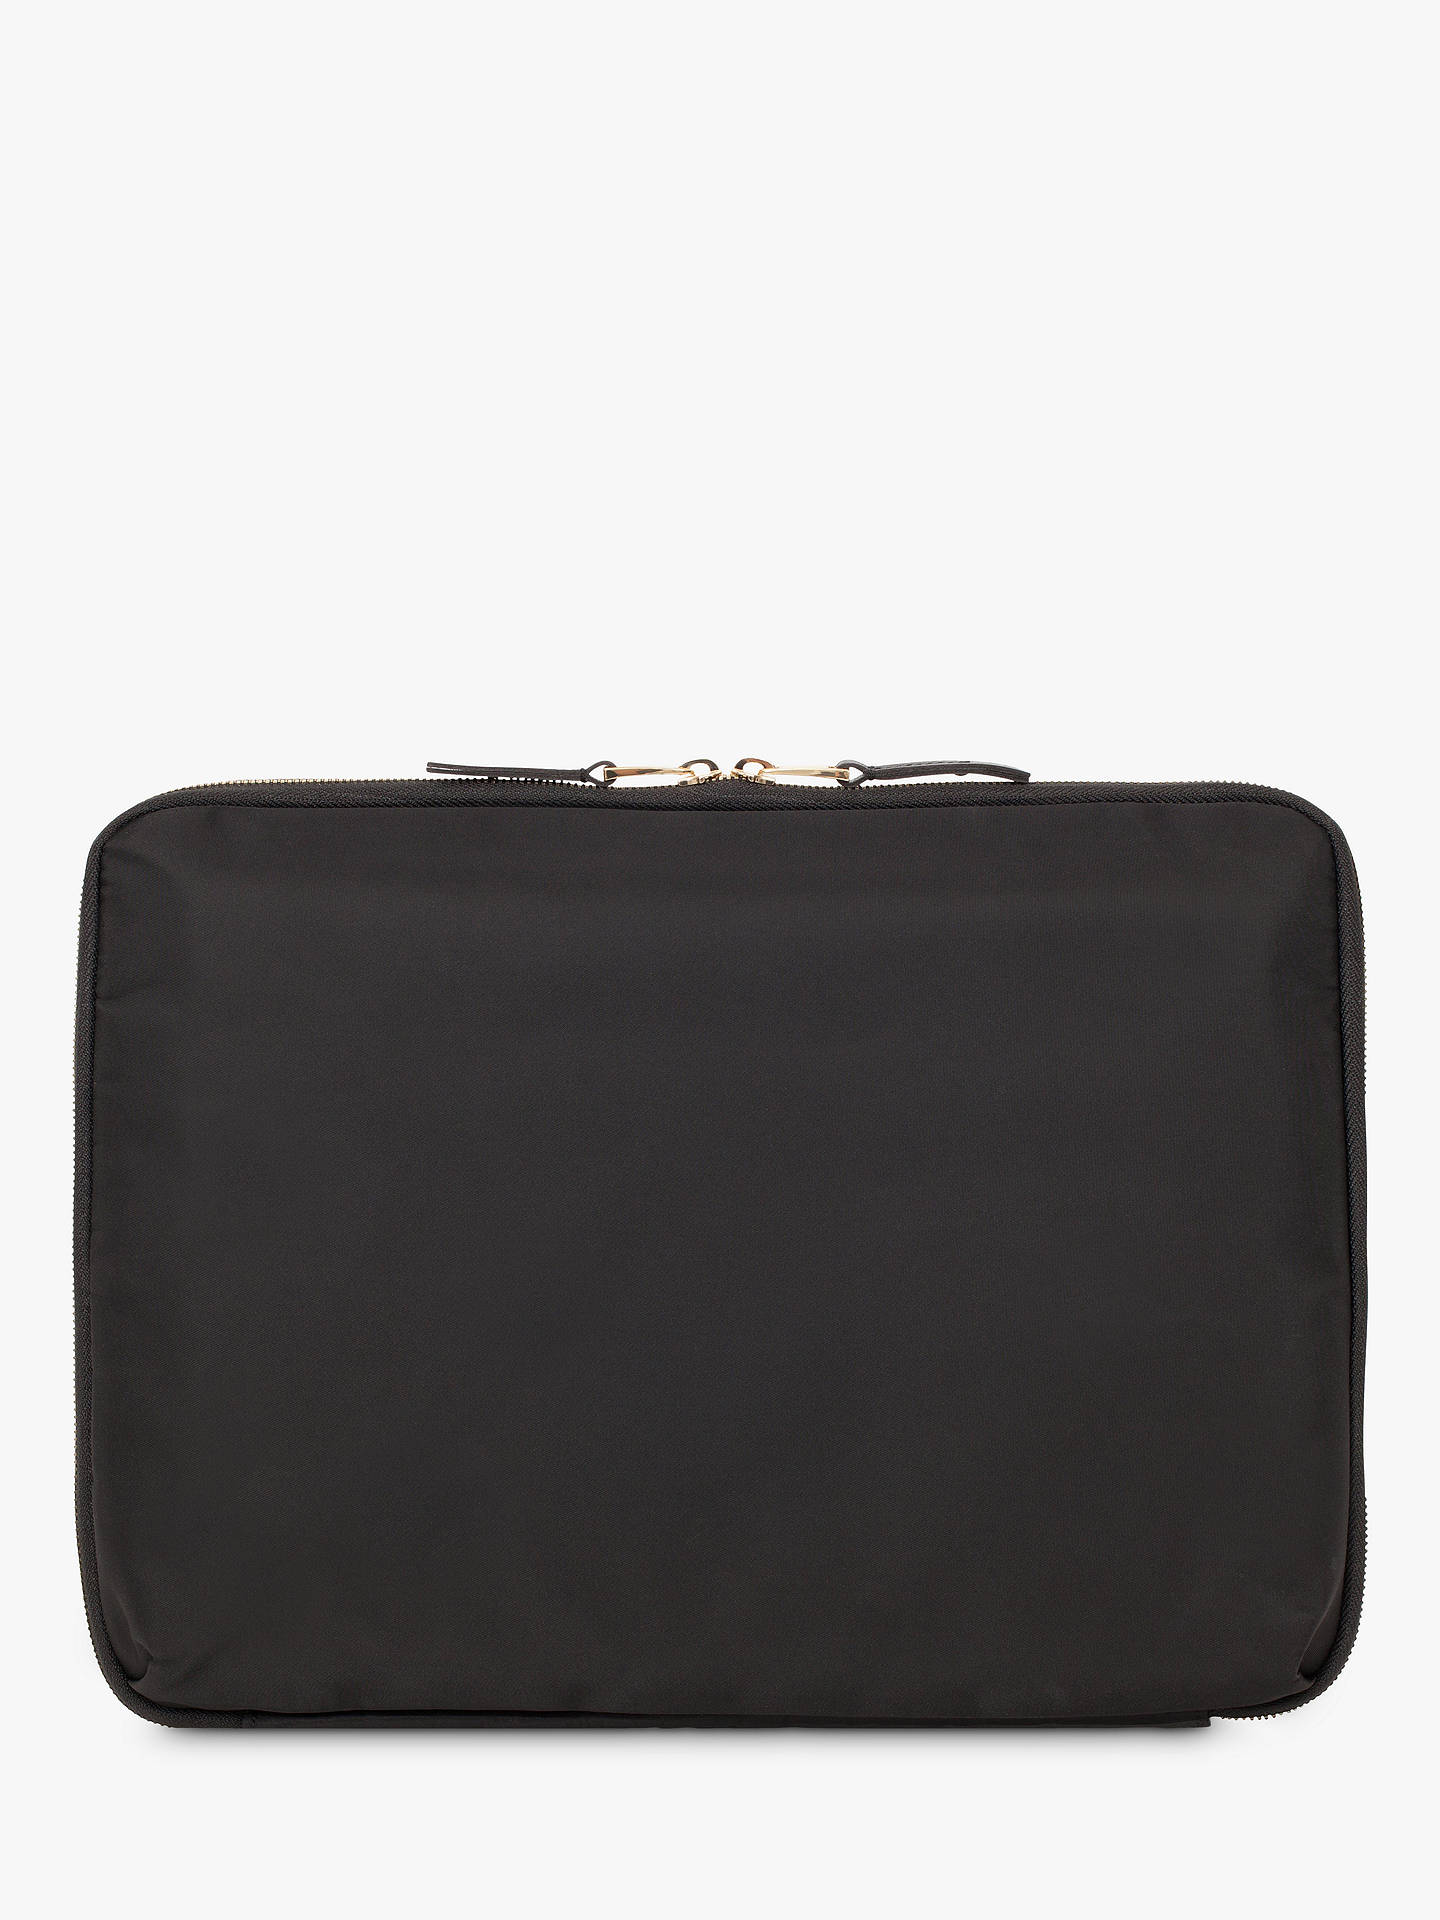 208b492a7071 Knomo Mayfair Knomad Water-Resistant Tech Organiser/Case for Tablets up to  13